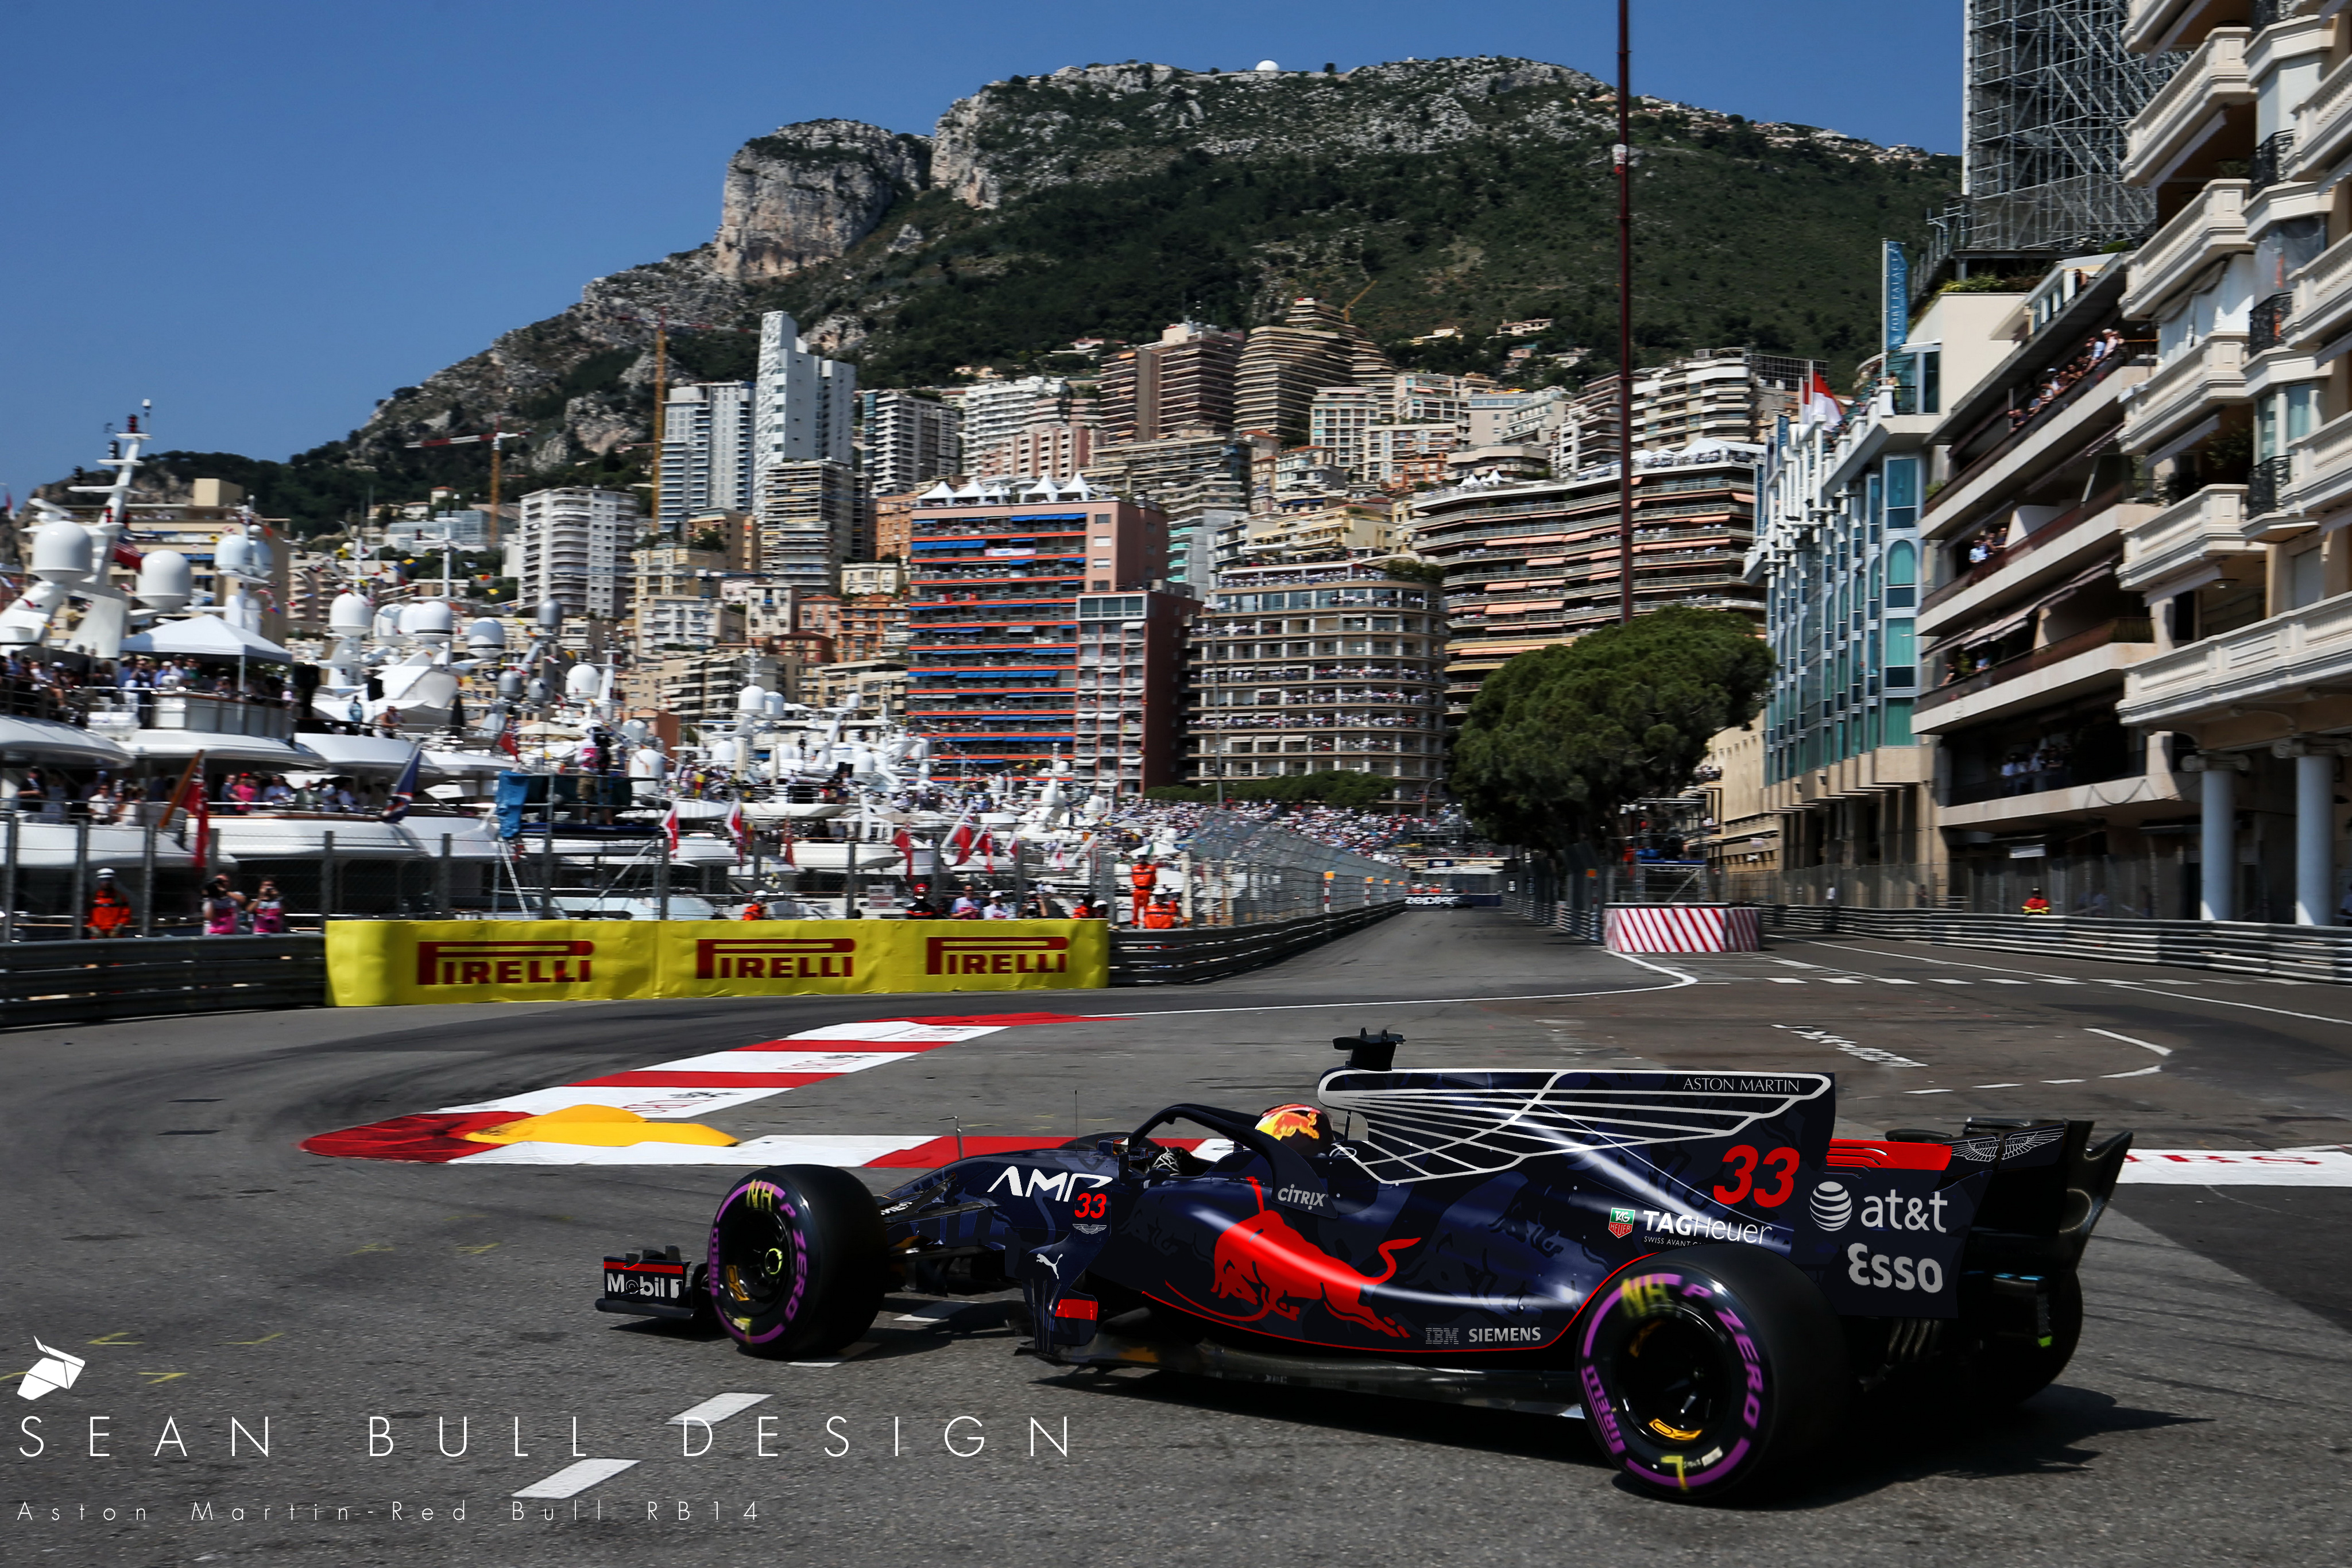 Formula One Turning The Red Bull Racing Aston Martin Story On Its Head Jwgp